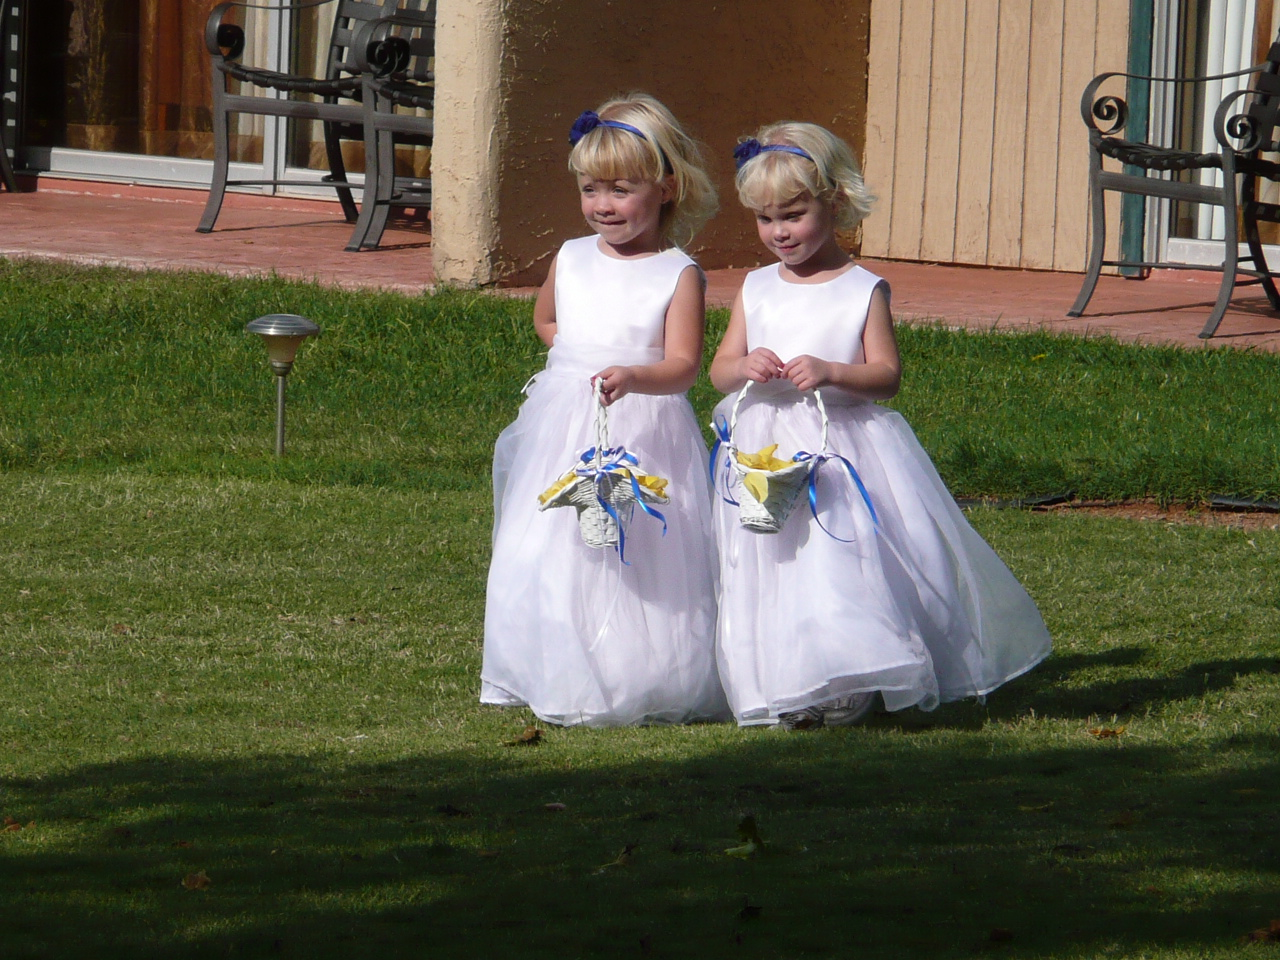 2ef31d4fac Cute Flower Girls Help Out at the Wedding